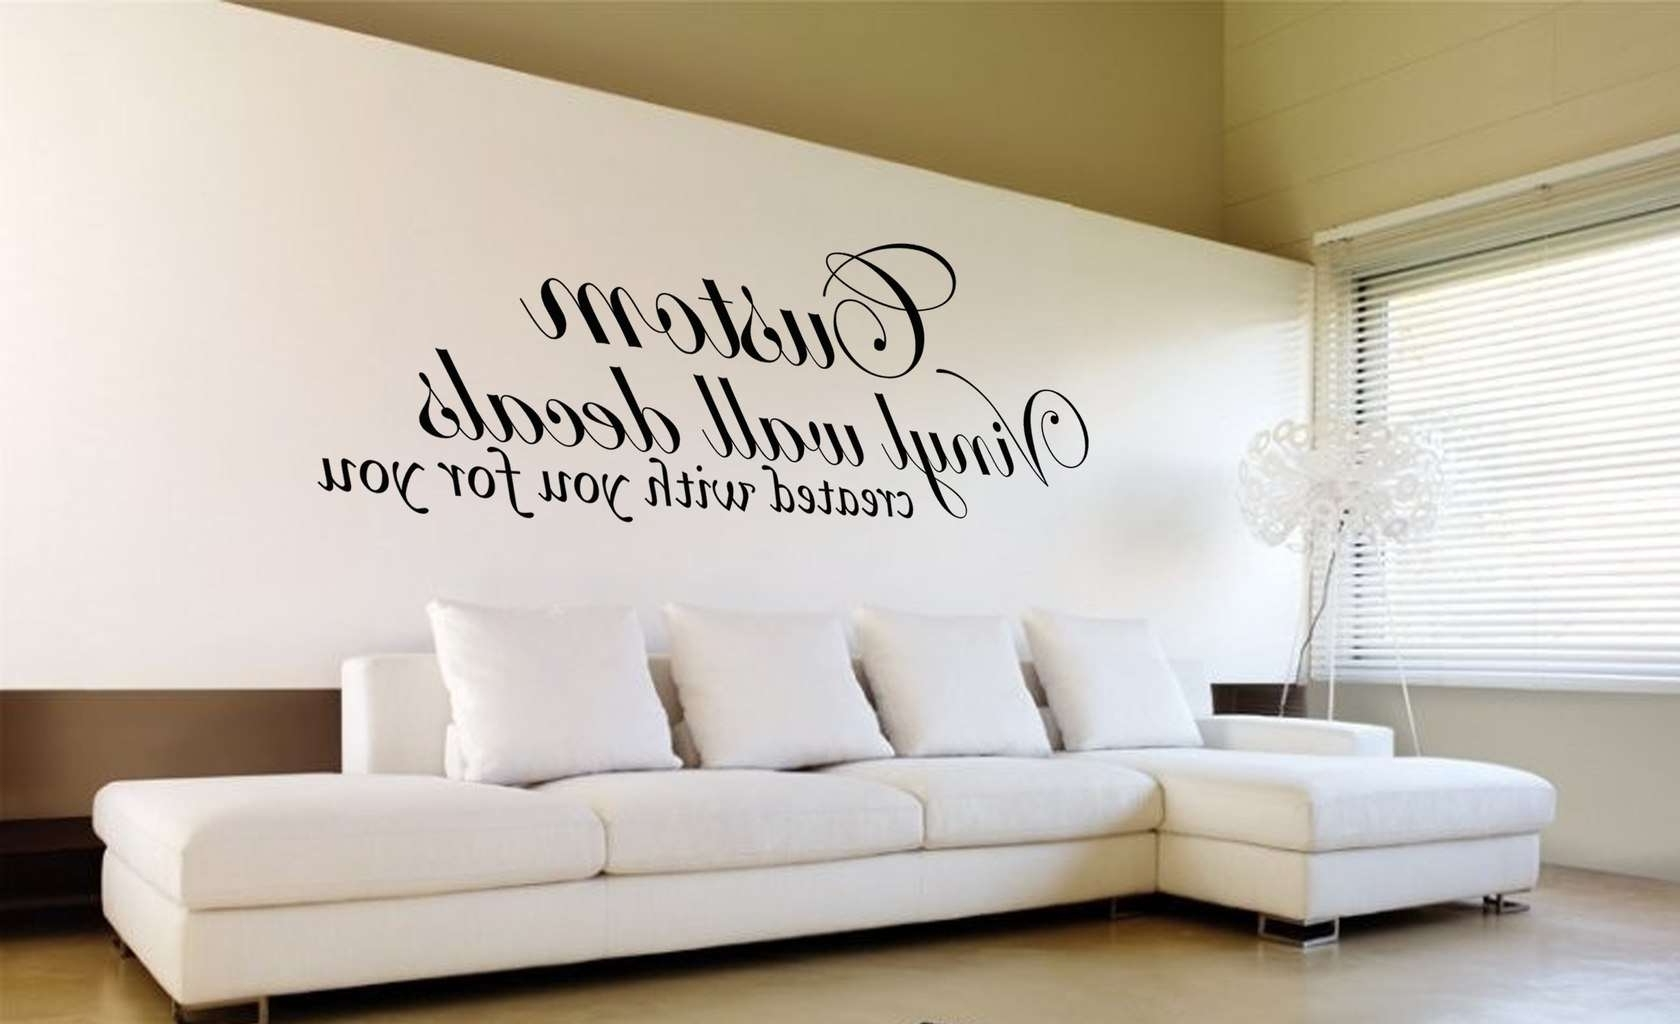 Custom Wall Art Decal Sticker With Regard To Recent Wall Art Decals (View 2 of 15)